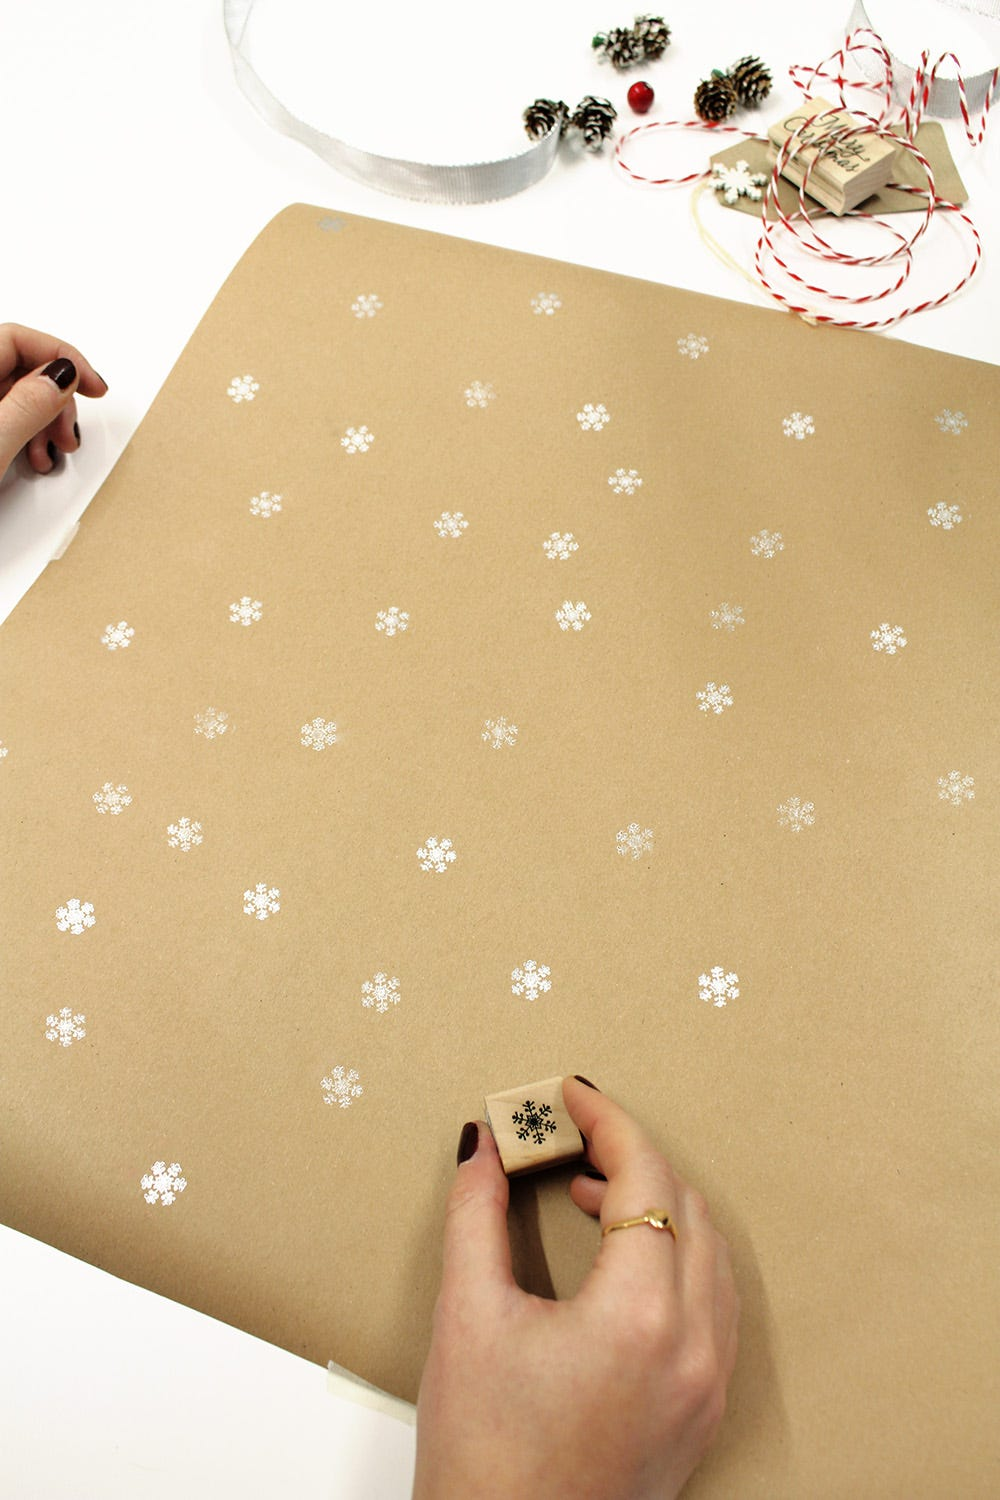 How To Diy Your Own Christmas Wrapping Paper Latest In